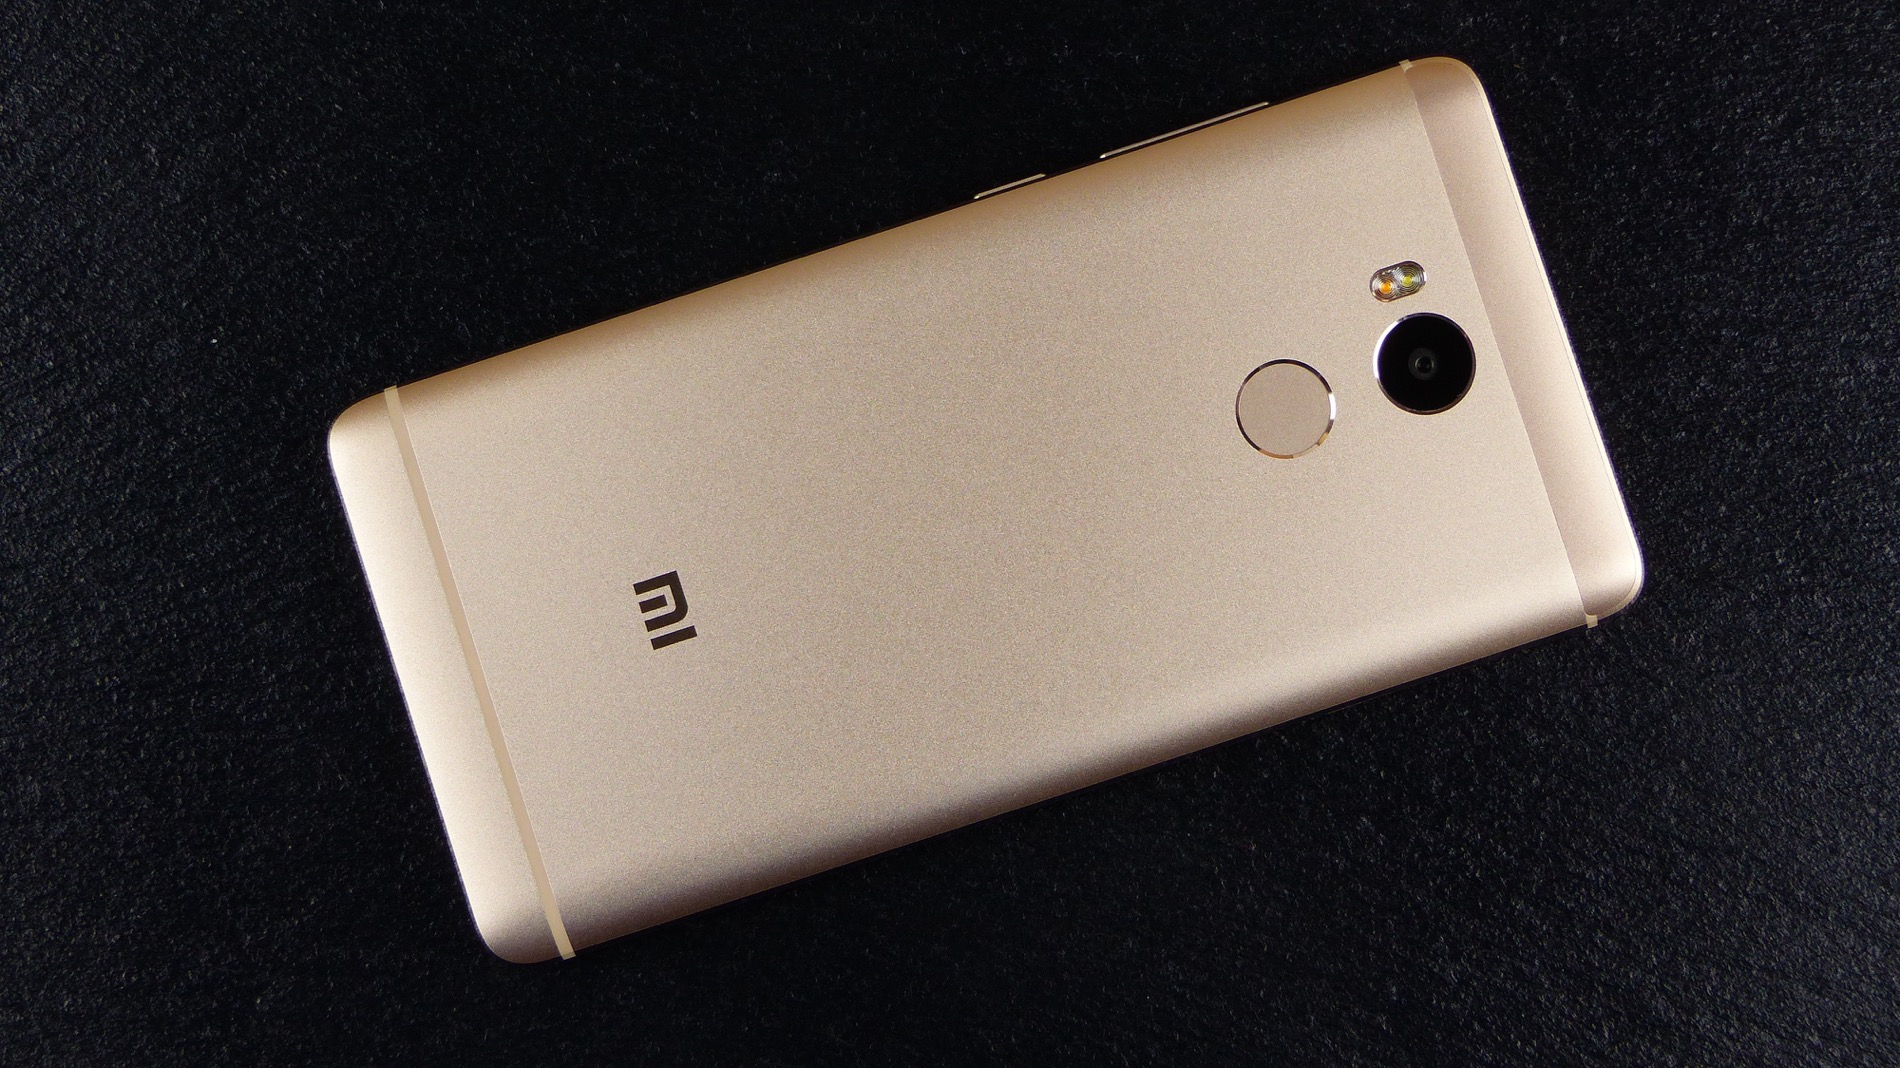 xiaomi-redmi-4-prime-_20161229-181245_1 Das iPhone 7 Plus im Test